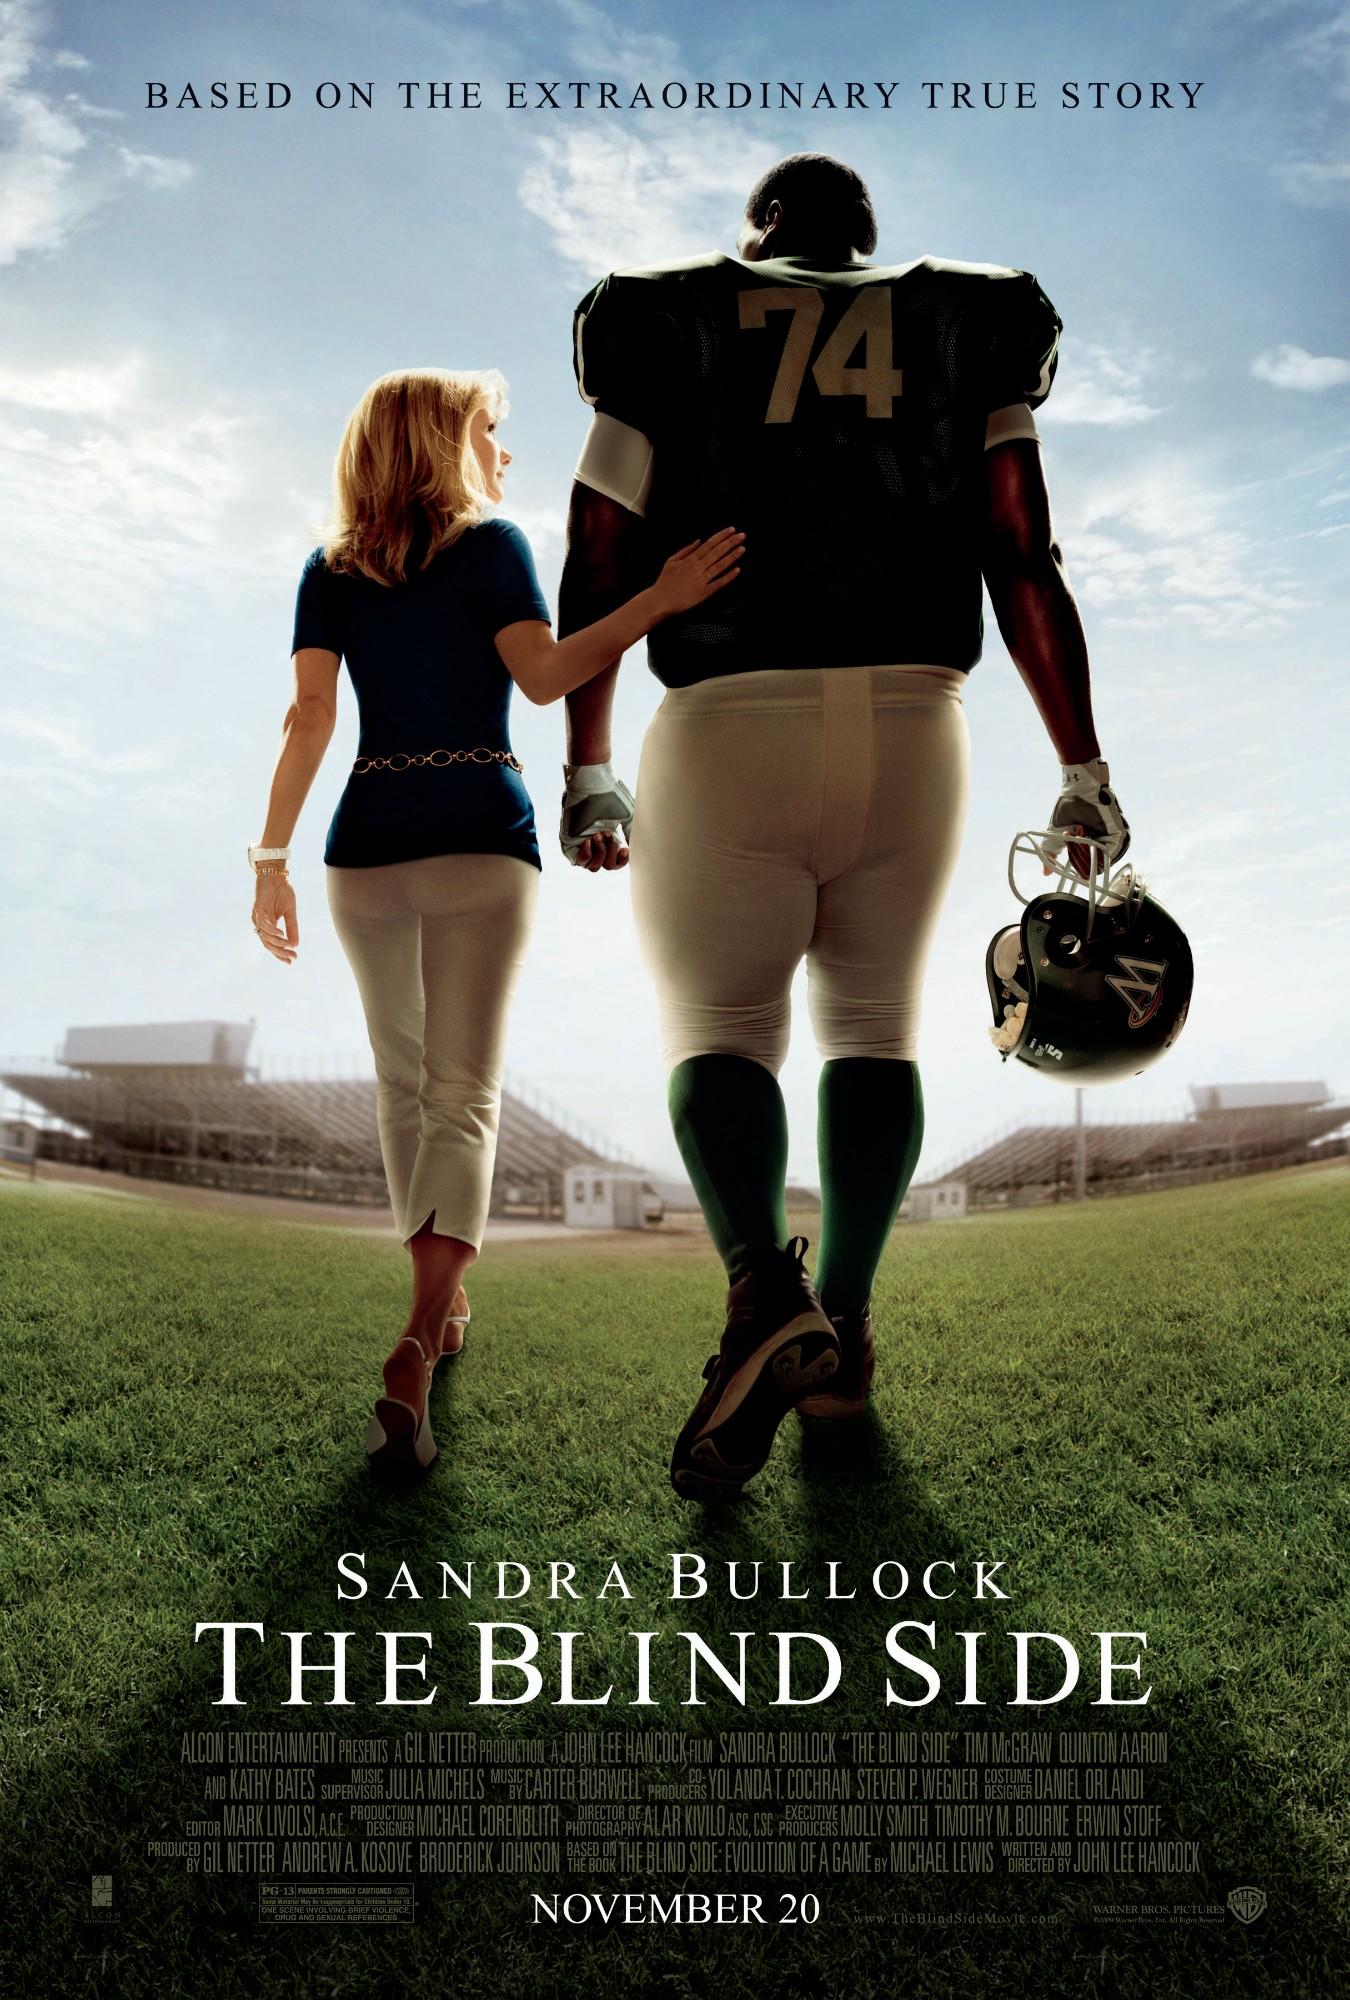 Mobile De Allemagne Affiche Du Film The Blind Side - Affiche 1 Sur 1 - Allociné